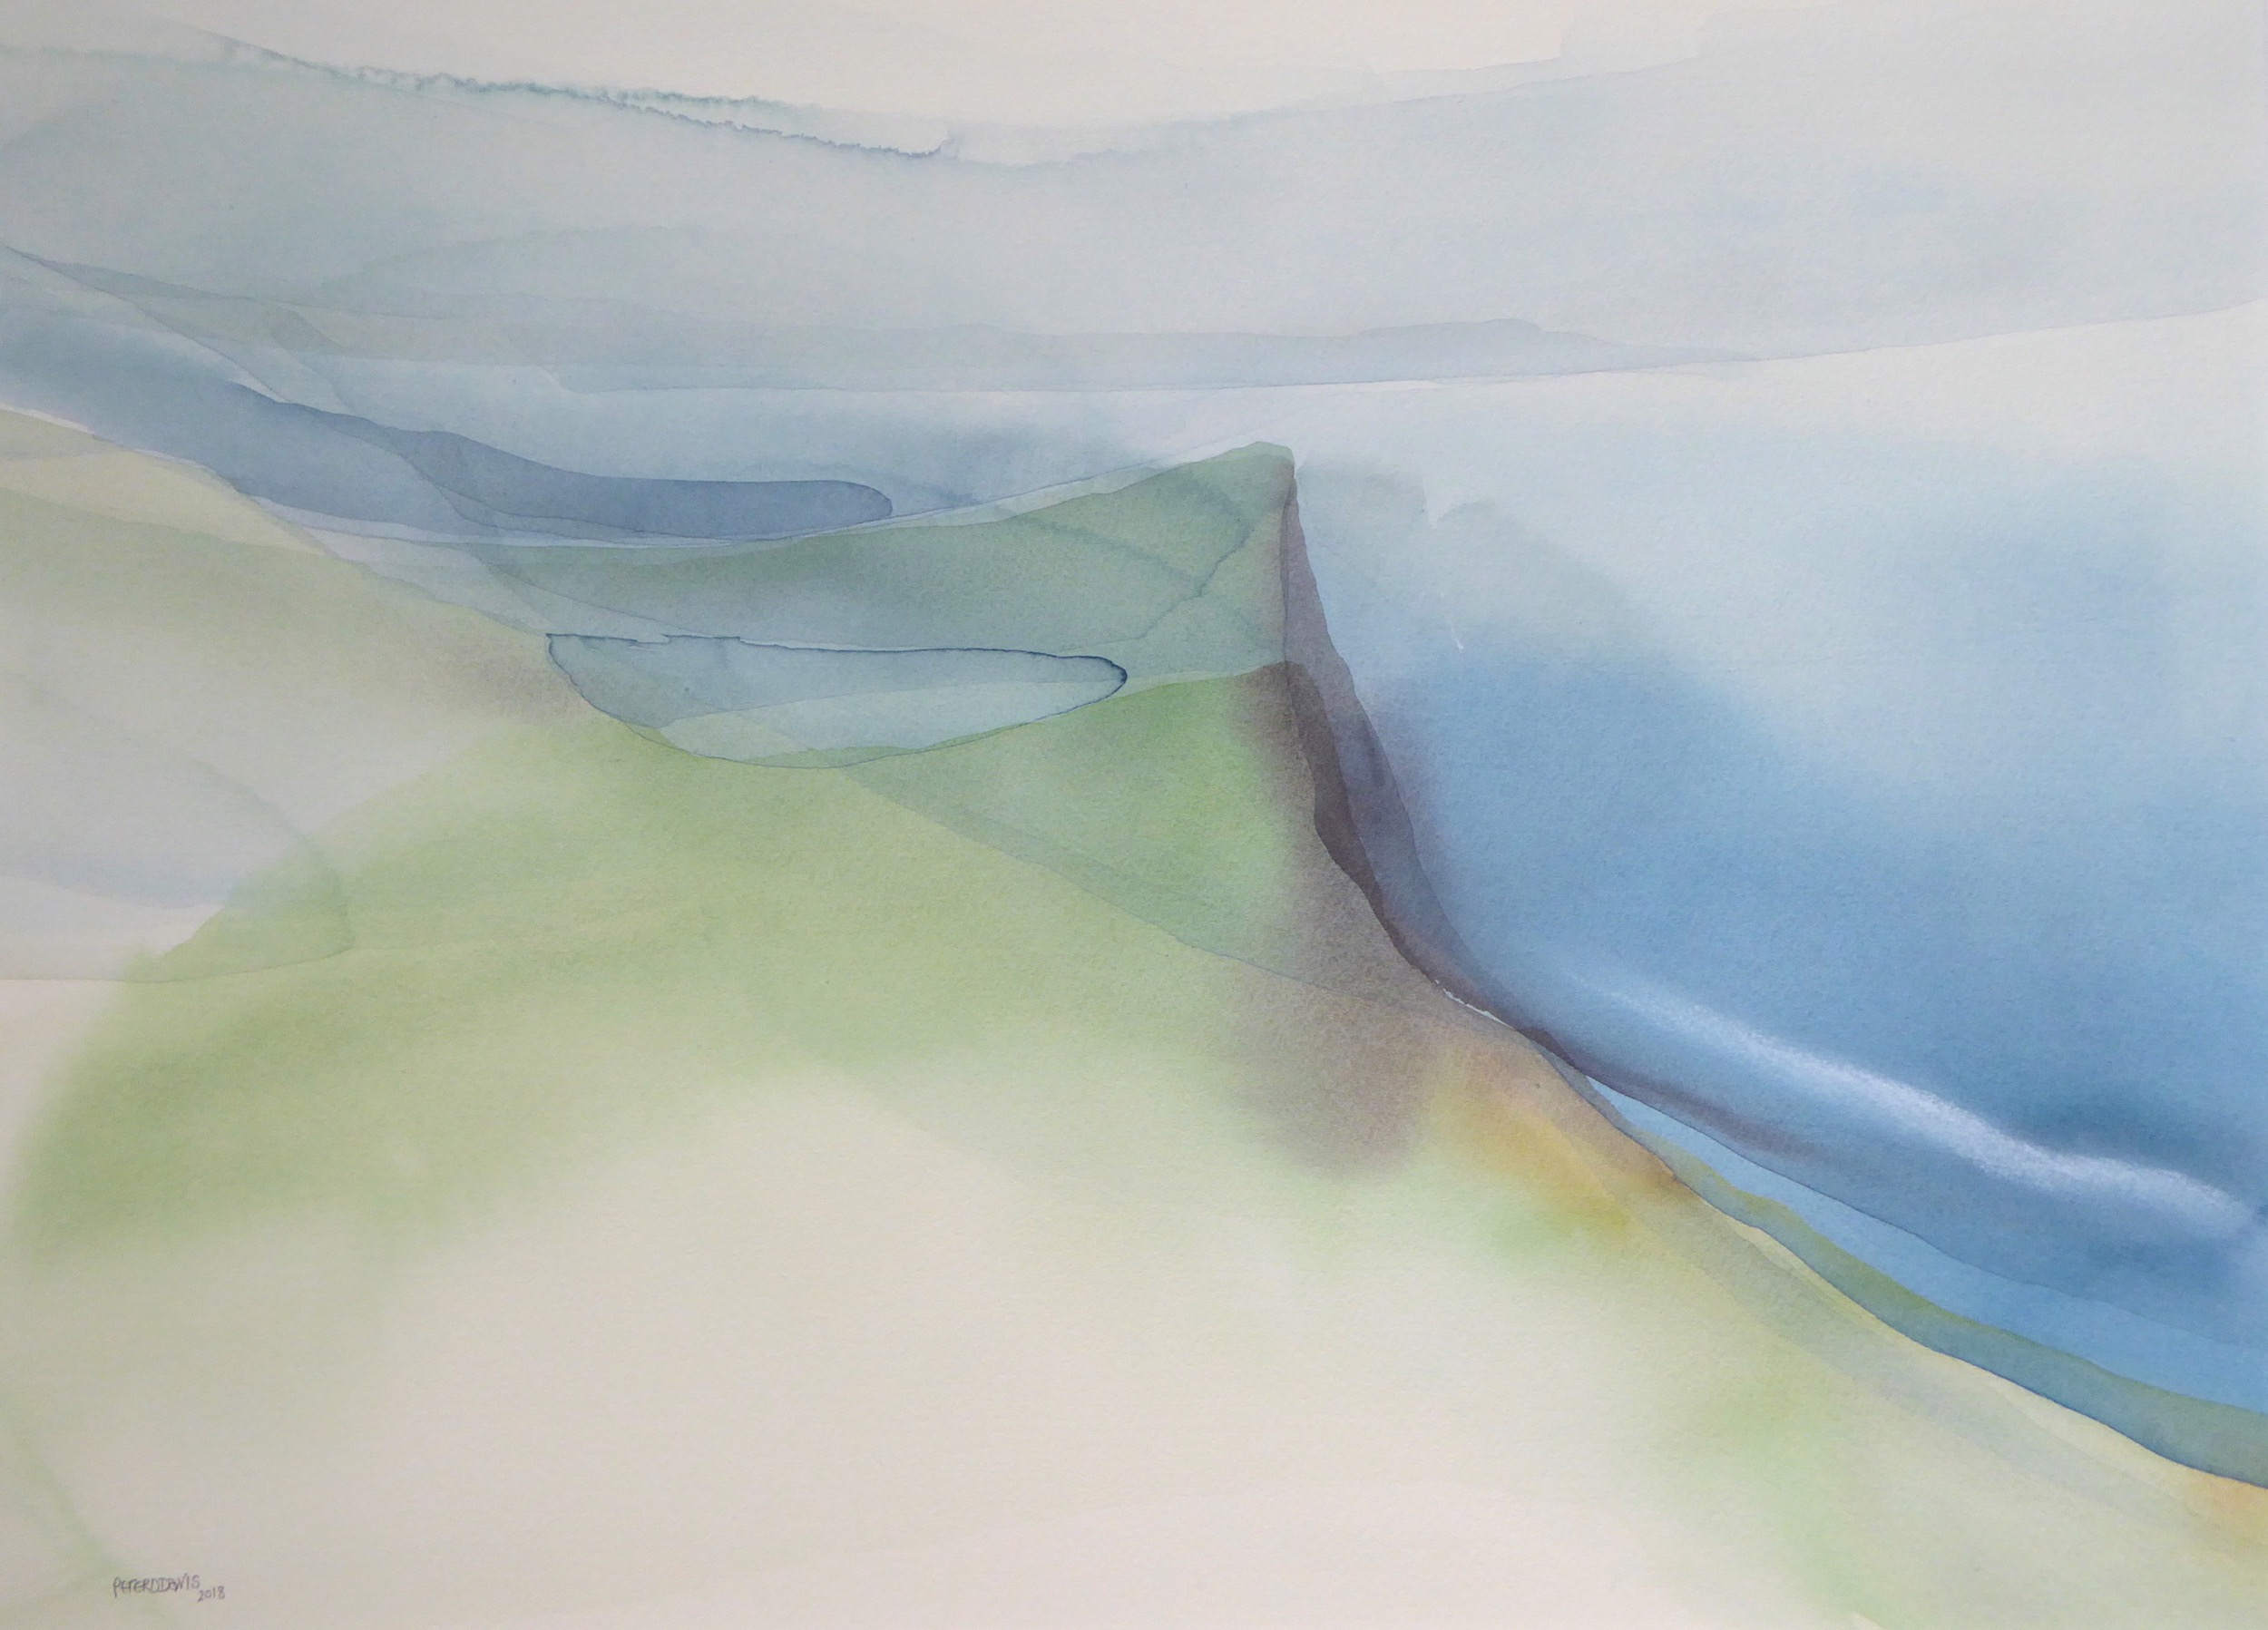 Peter Davis. The Nev, Watercolour and rubbing of chalk on paper 2018, (70x51cm)